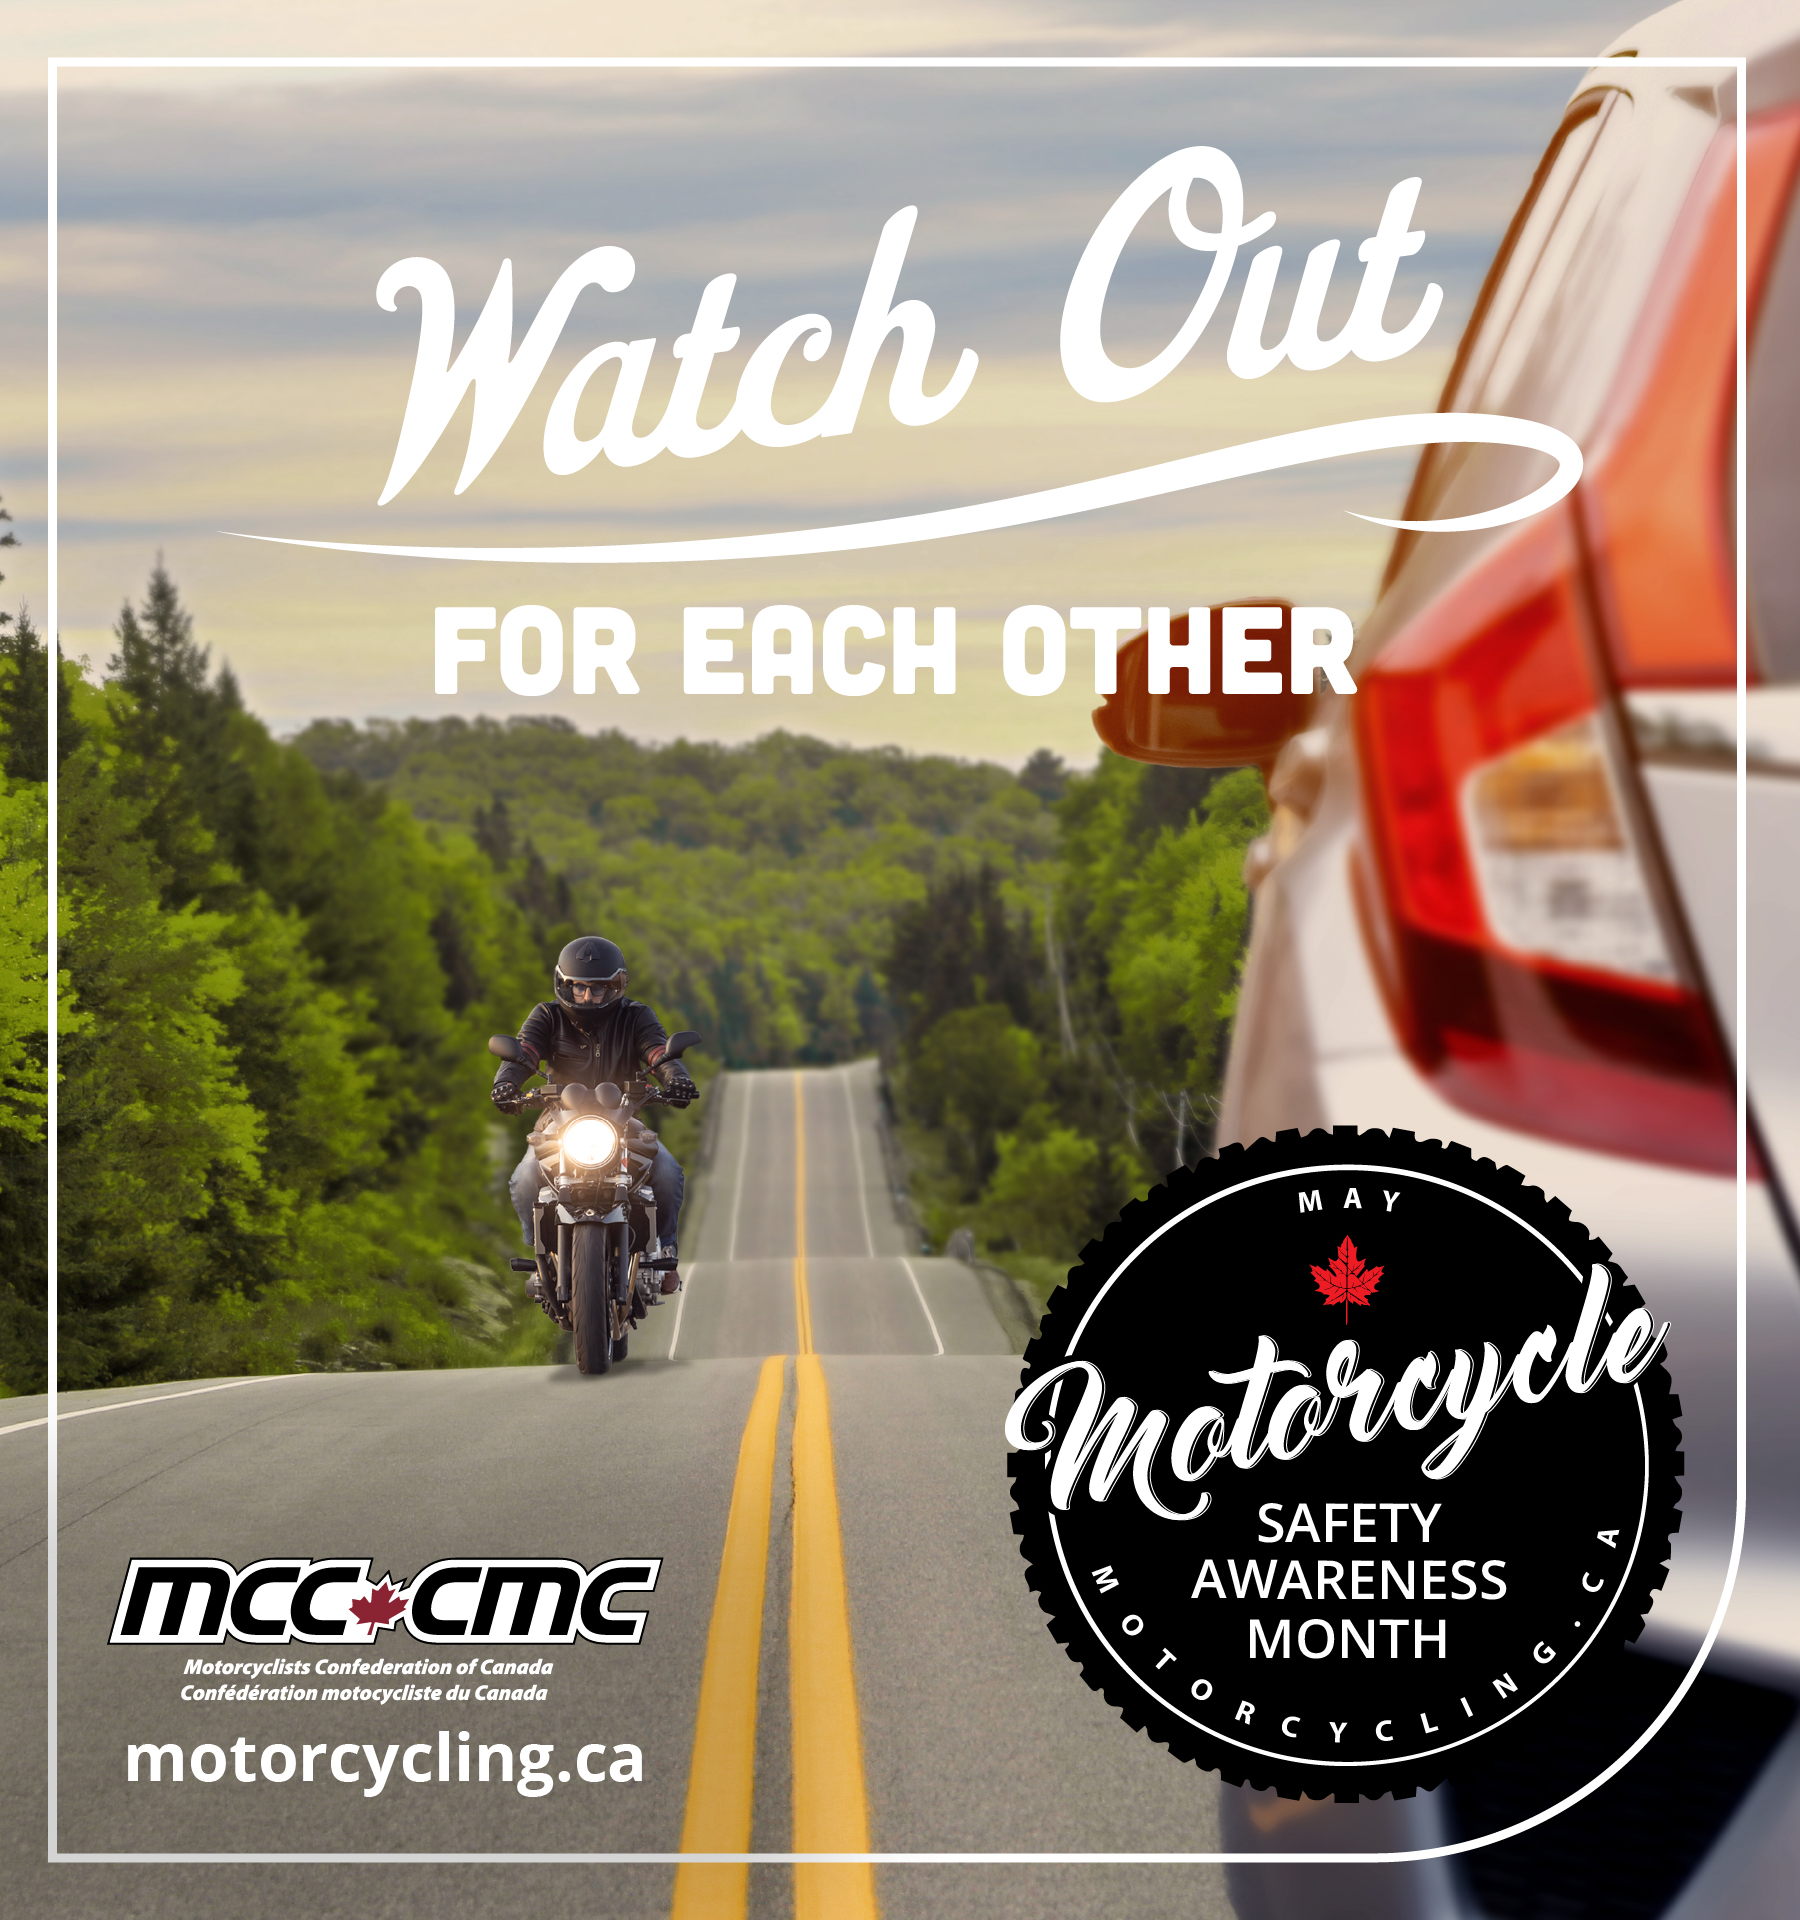 CMMG MOTORCYCLE SAFETY AWARENESS MONTH MESSAGE